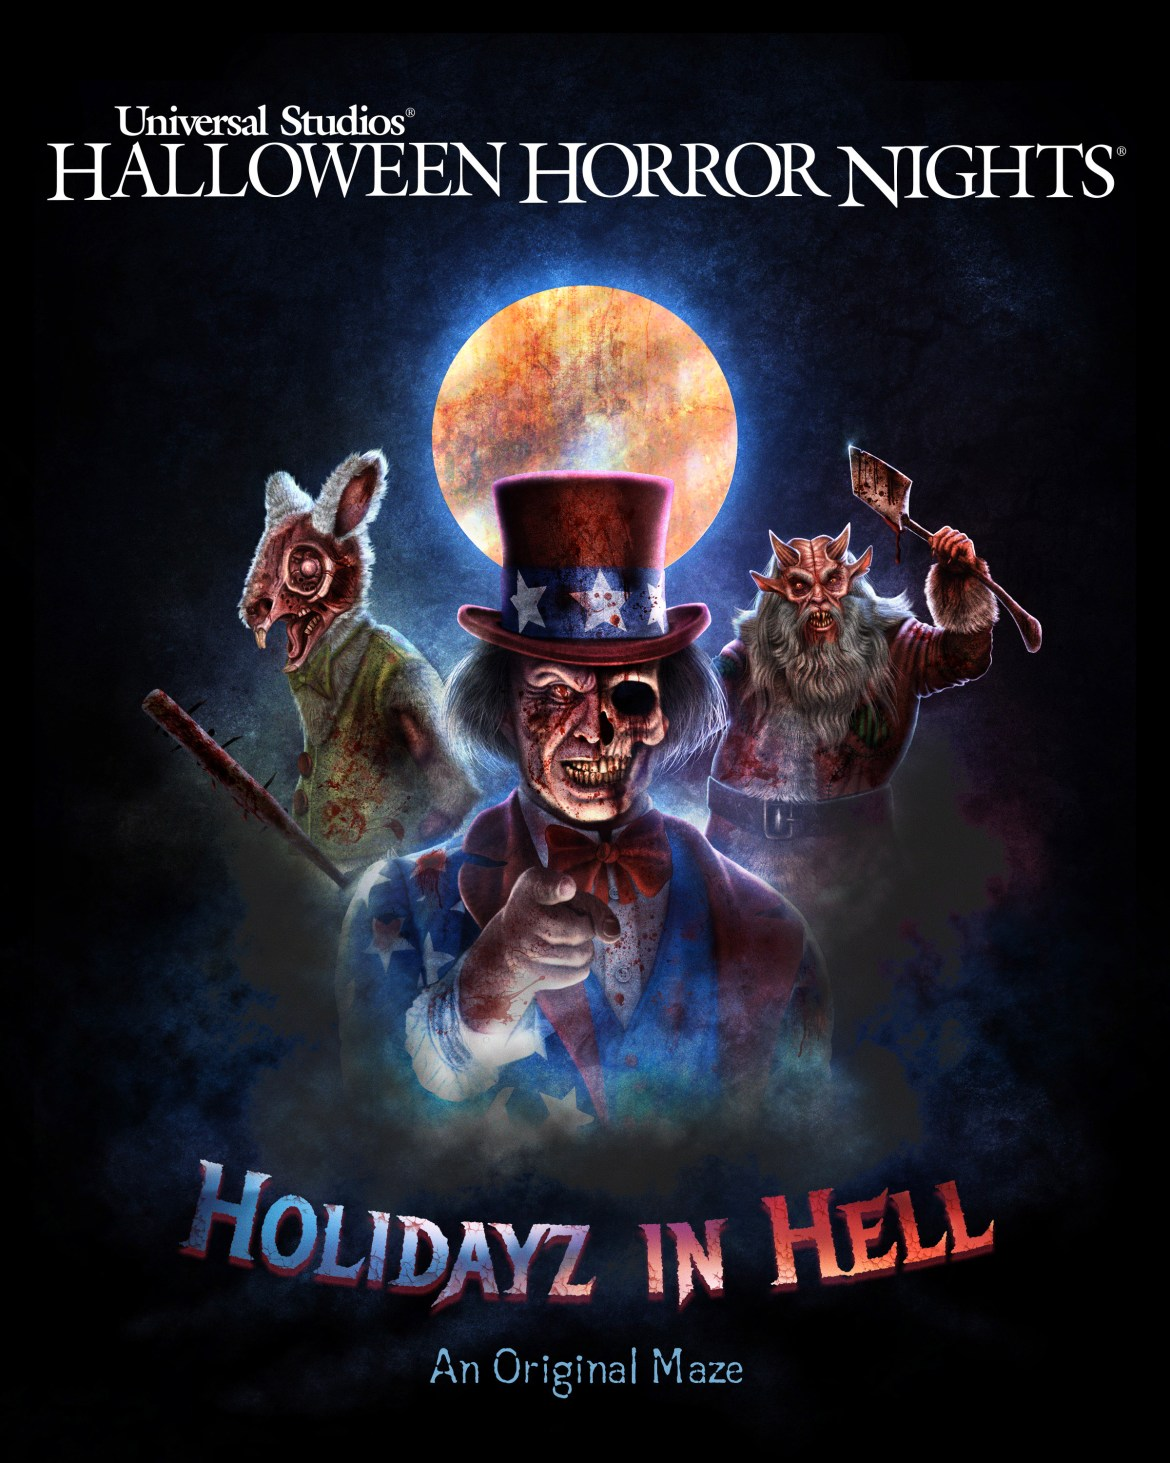 Universal Studios Hollywood Sends Guests on a Tour of the Underworld for Halloween Horror Nights